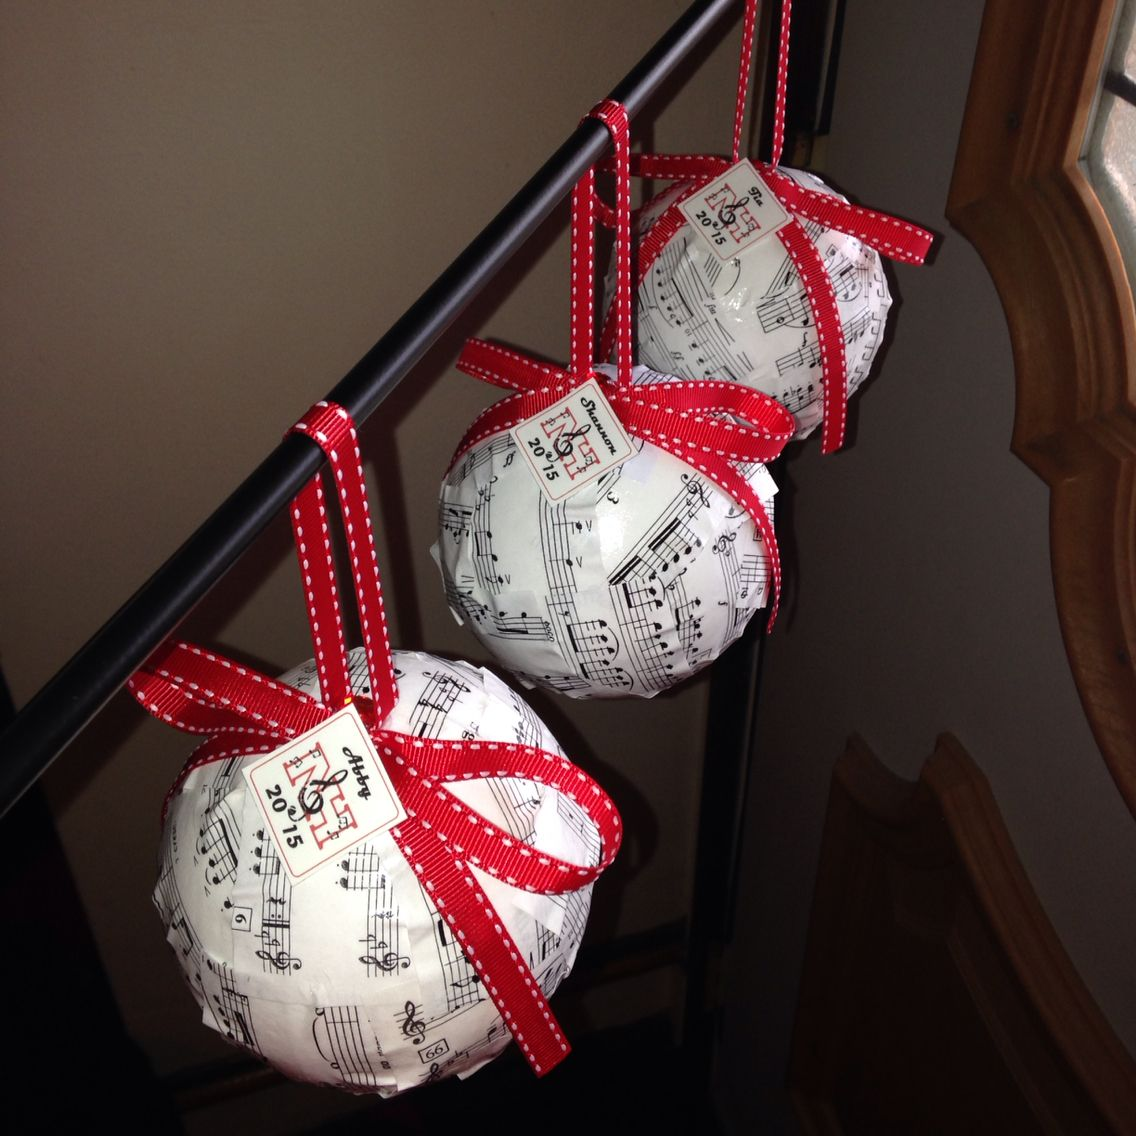 Delightful Marching Band Christmas Ornaments Part - 14: Pinterest Inspired, Musical Holiday Ornaments As Gifts For Marching Band  Senior Night!